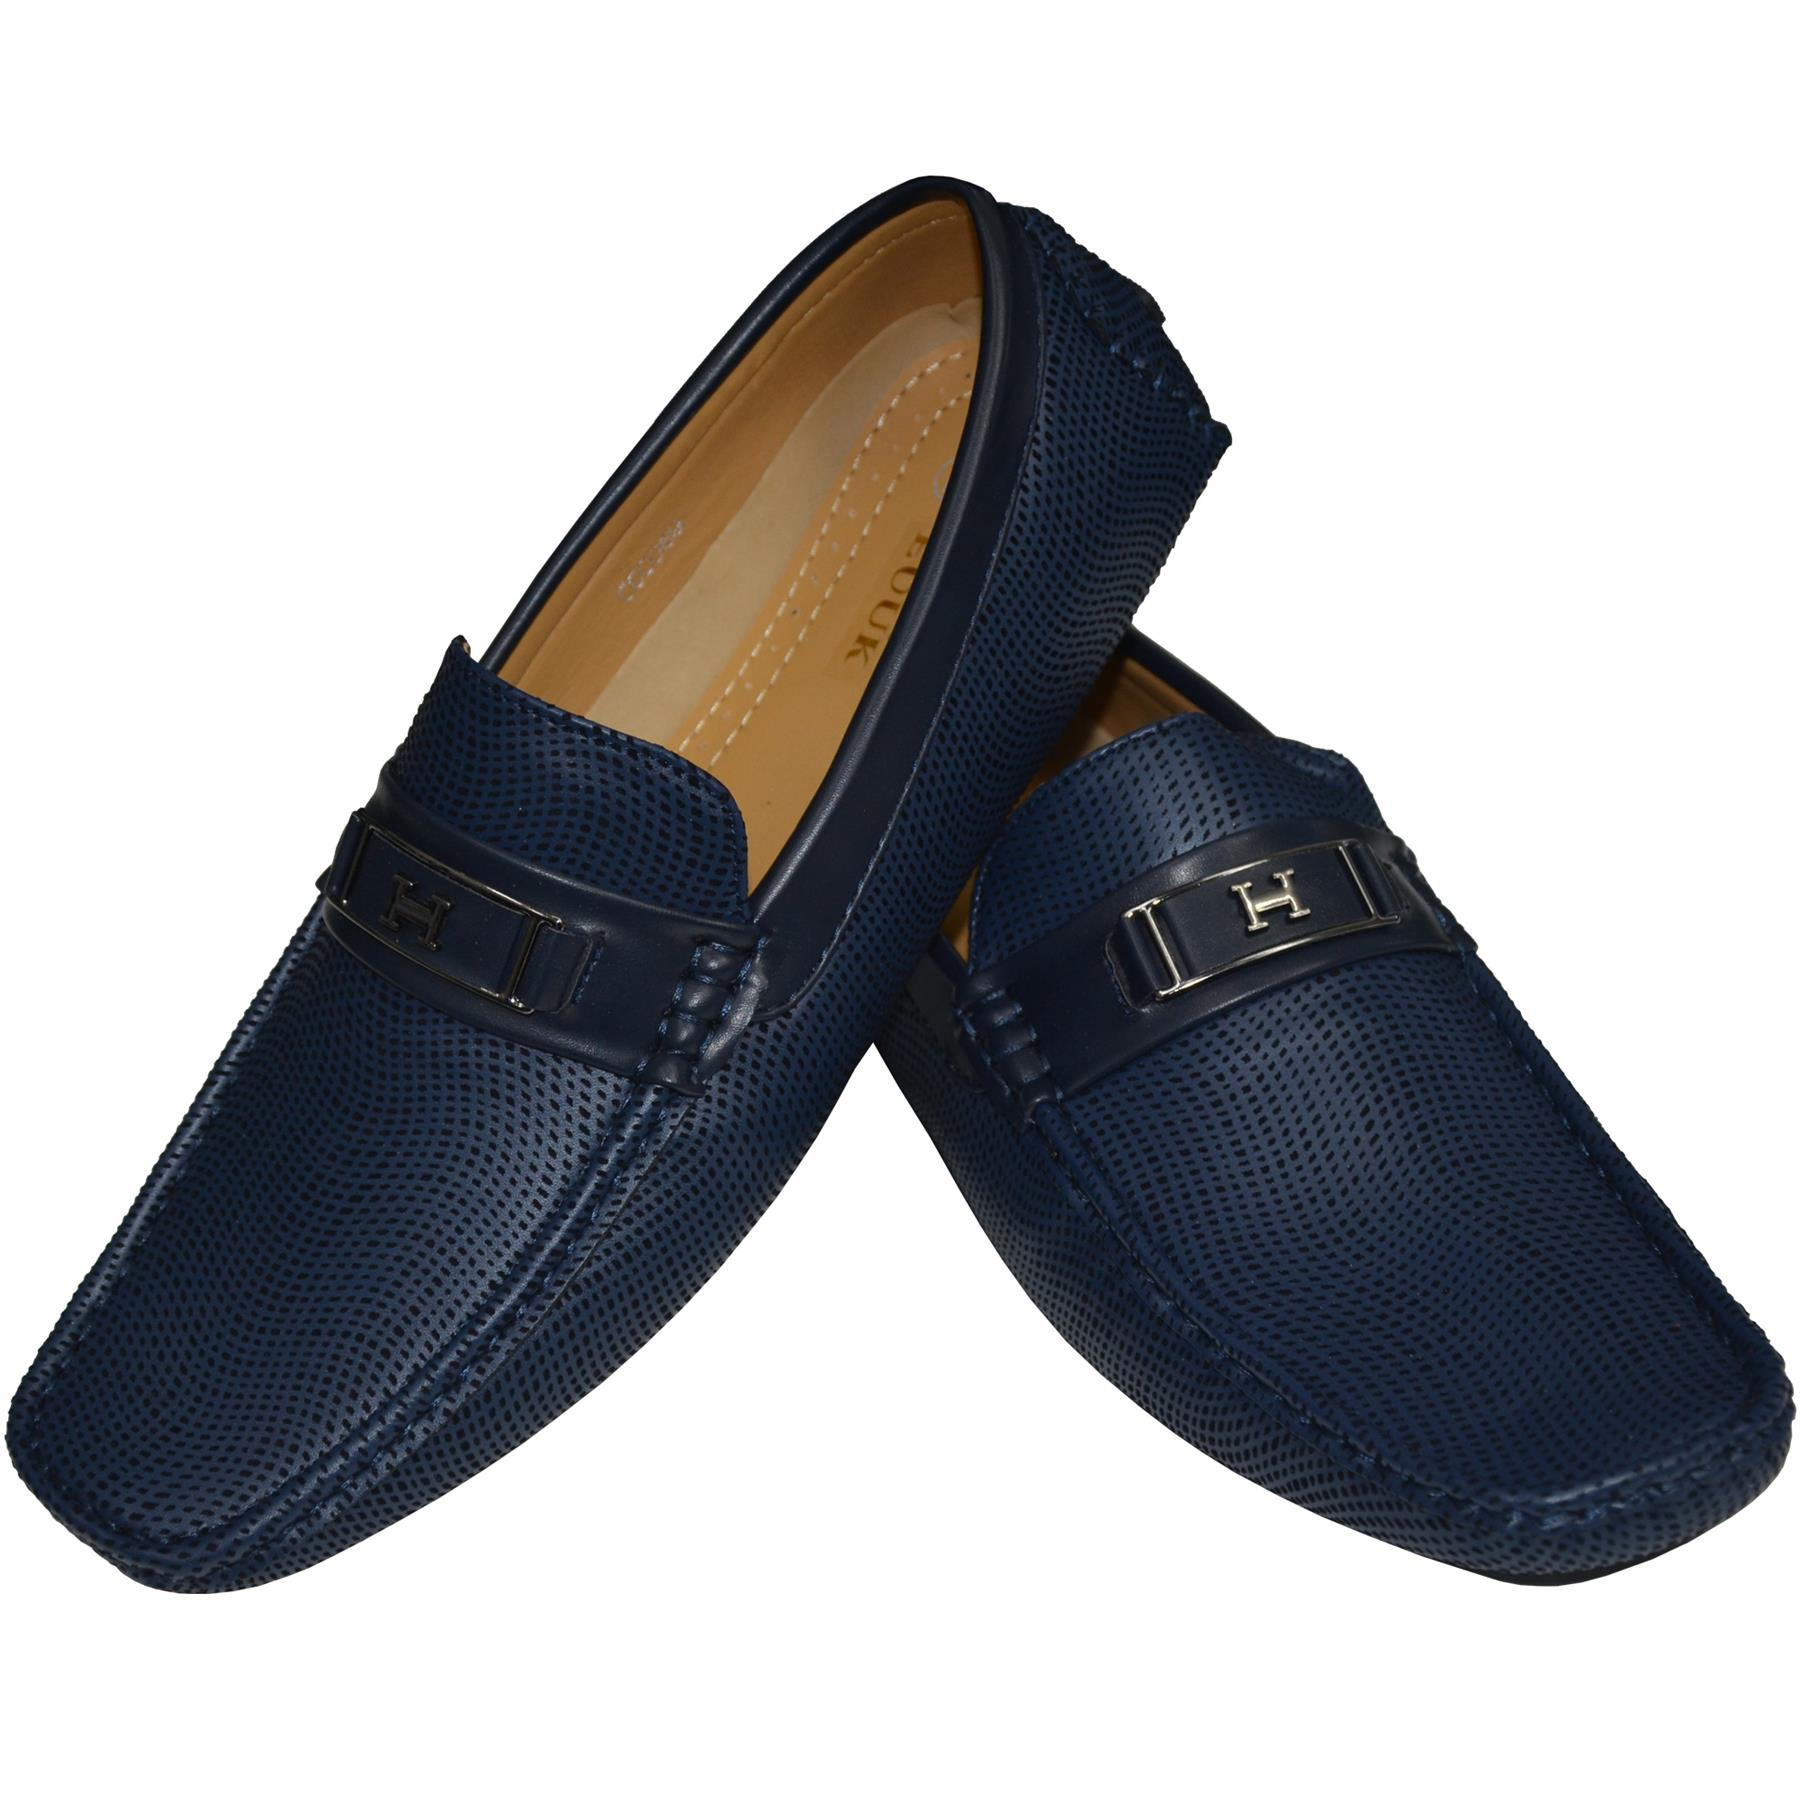 Mens-Suede-Loafers-Shoes-Moccasin-Slip-On-Casual-Boat-Driving-UK-Sizes-6-12 thumbnail 10